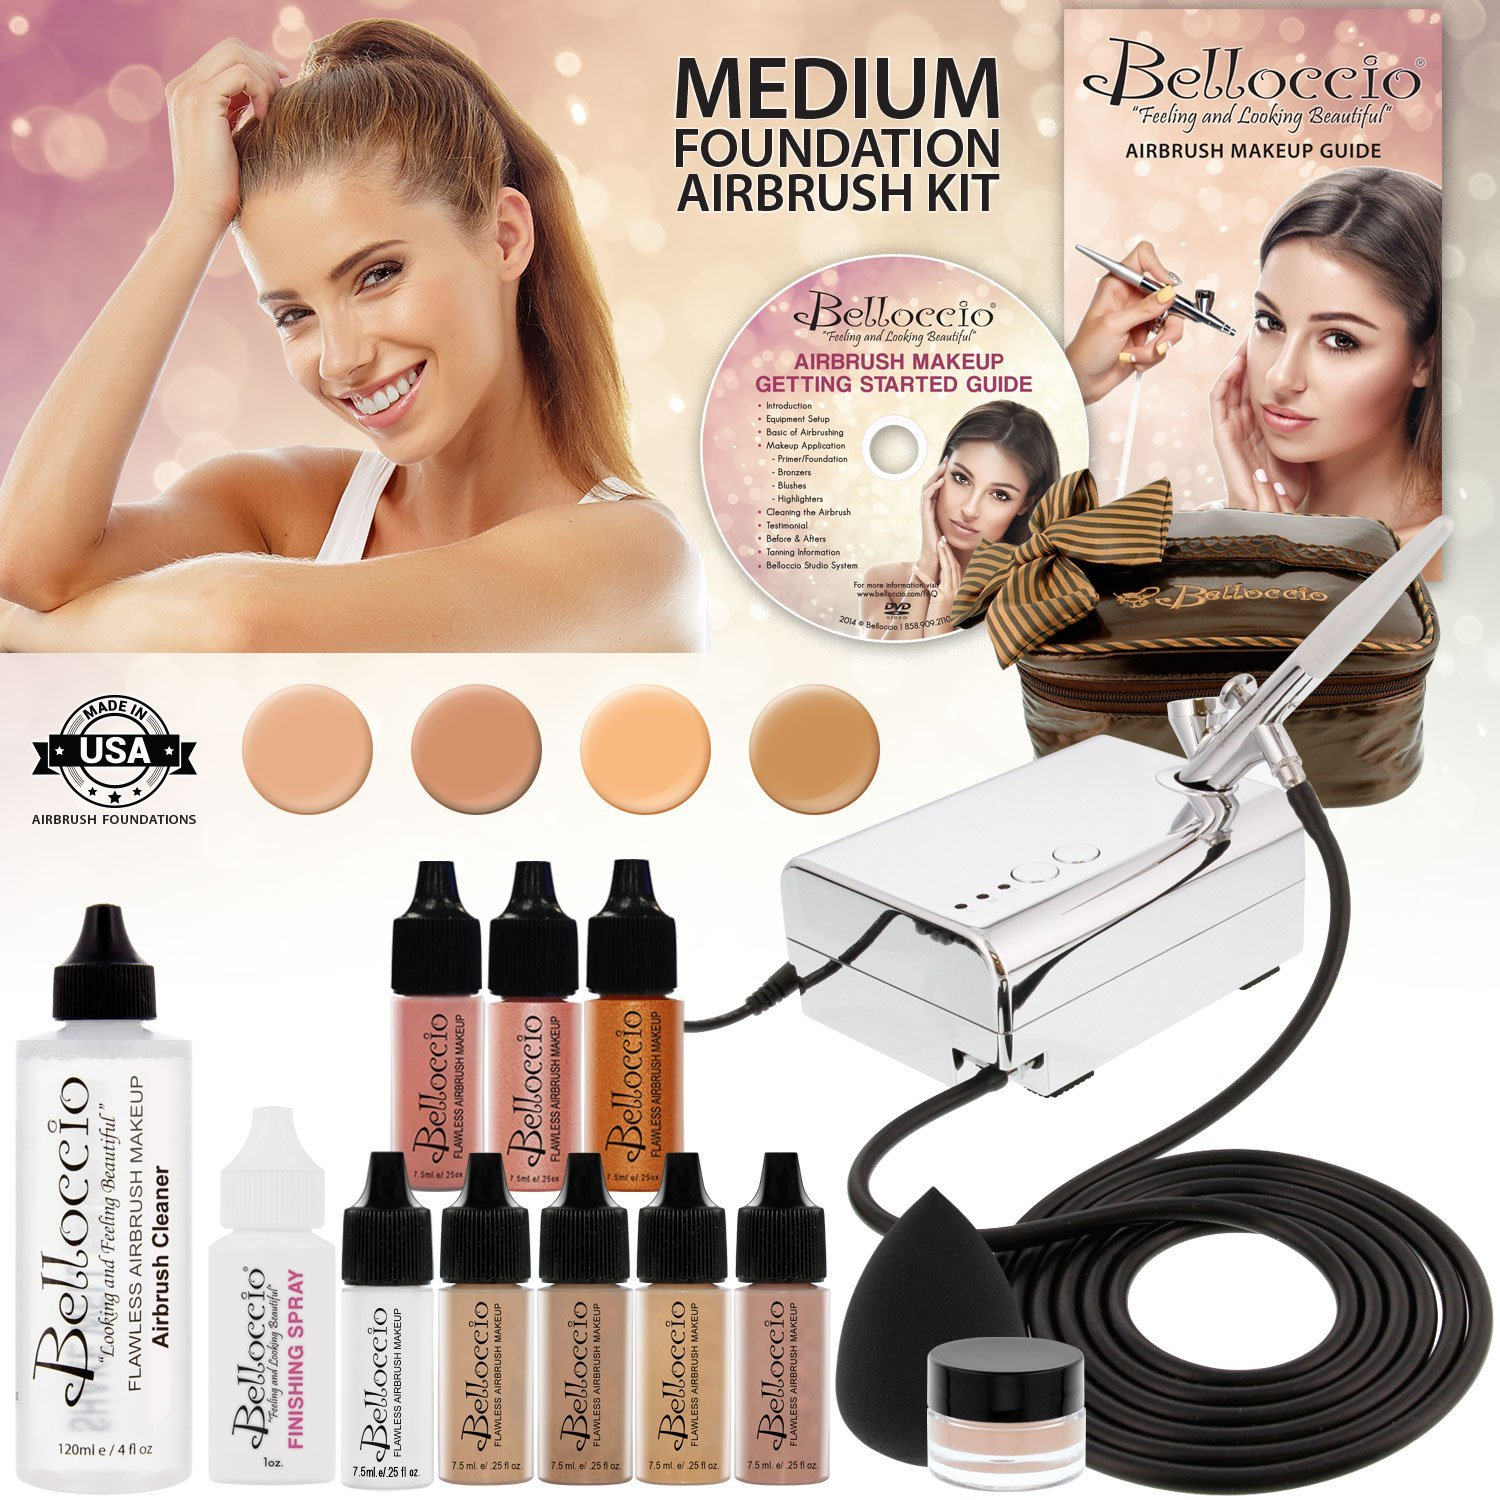 Belloccio Professional Beauty Airbrush Cosmetic Makeup System with 4 Medium Shades of Foundation in 1/4 Ounce Bottles